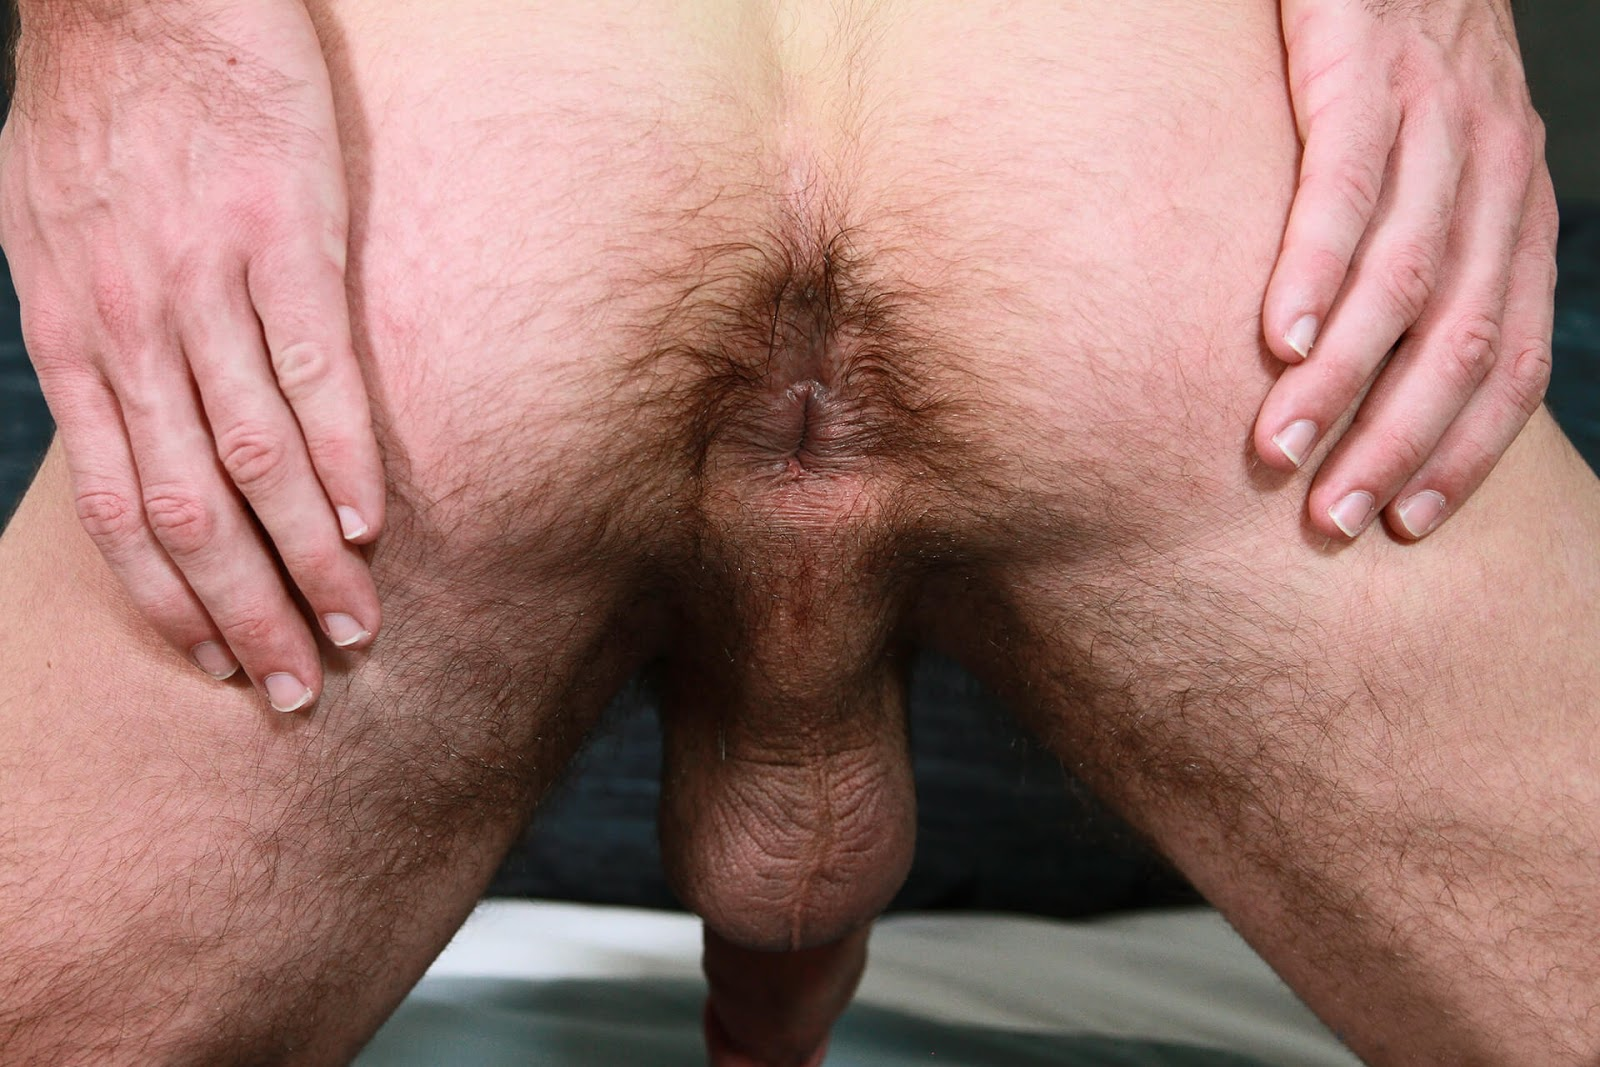 sweet hairy hole